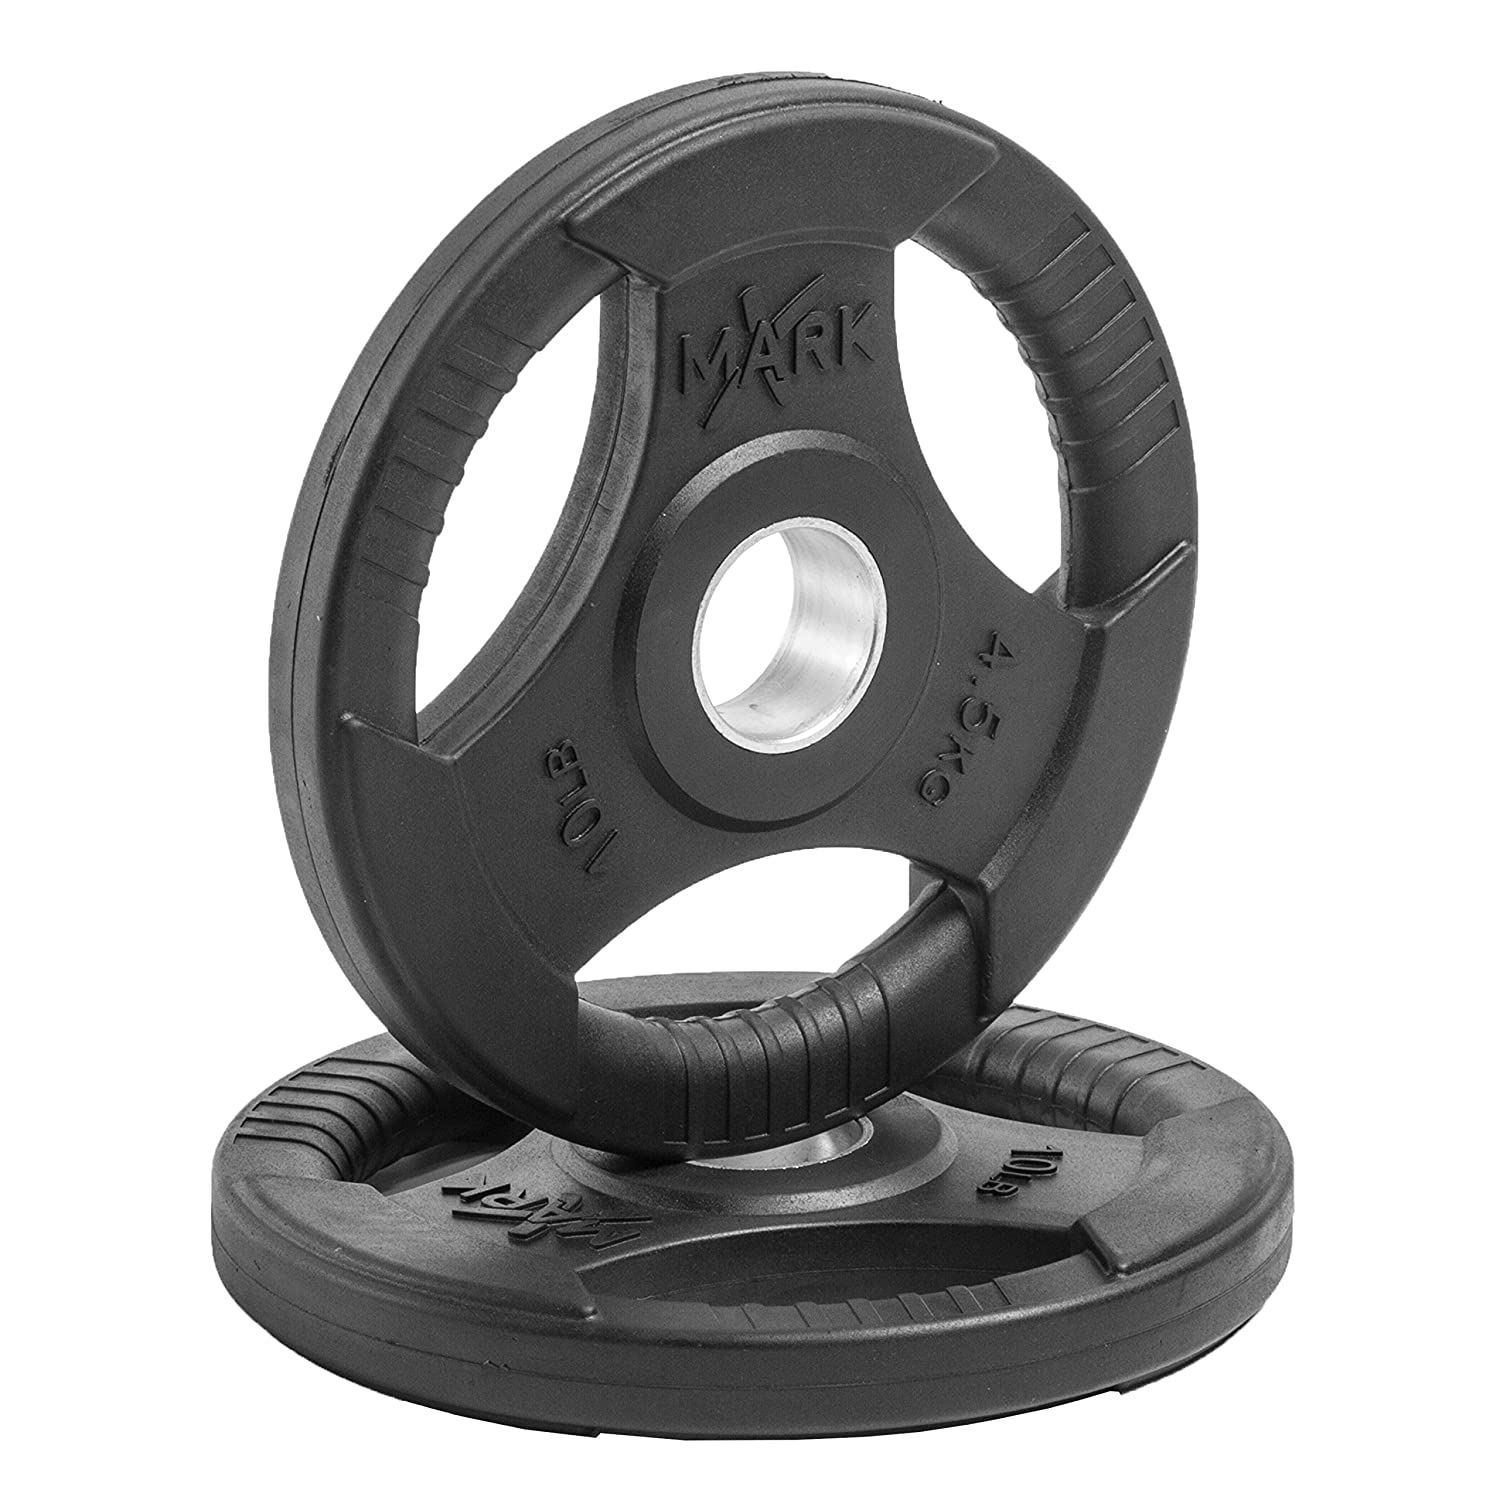 XMark Fitness Premium Quality Rubber Coated Tri-grip Olympic Plate Weights - Sold in Pairs  sc 1 st  Amazon.com & Amazon.com : Champion Rubber Coated Grip Plate : Weight Plates ...